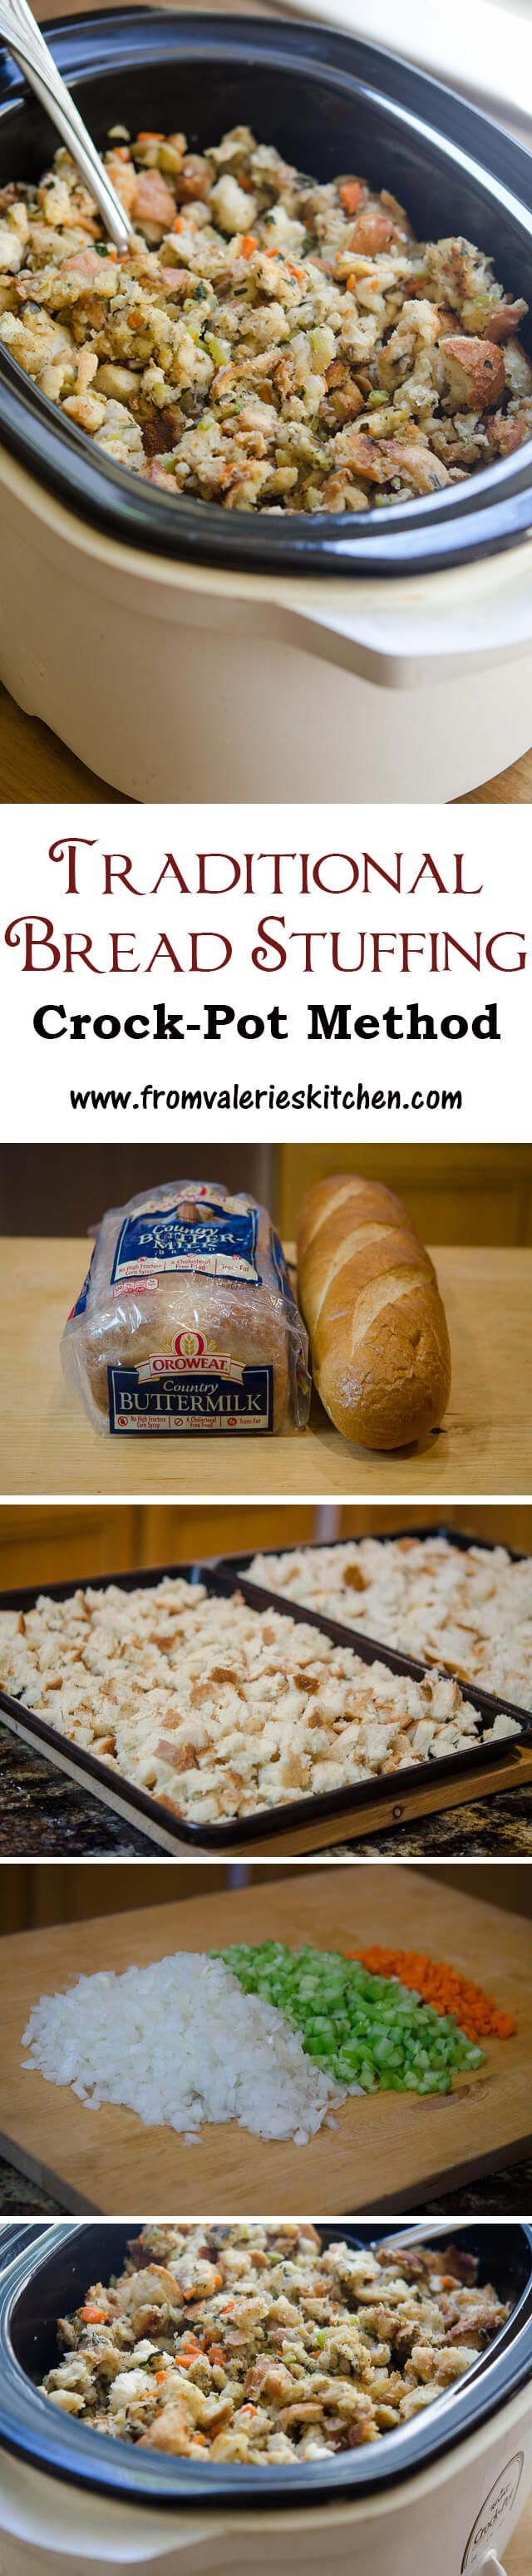 Cook your stuffing in your slow cooker and free up oven space on the big day! ~ http://www.fromvalerieskitchen.com